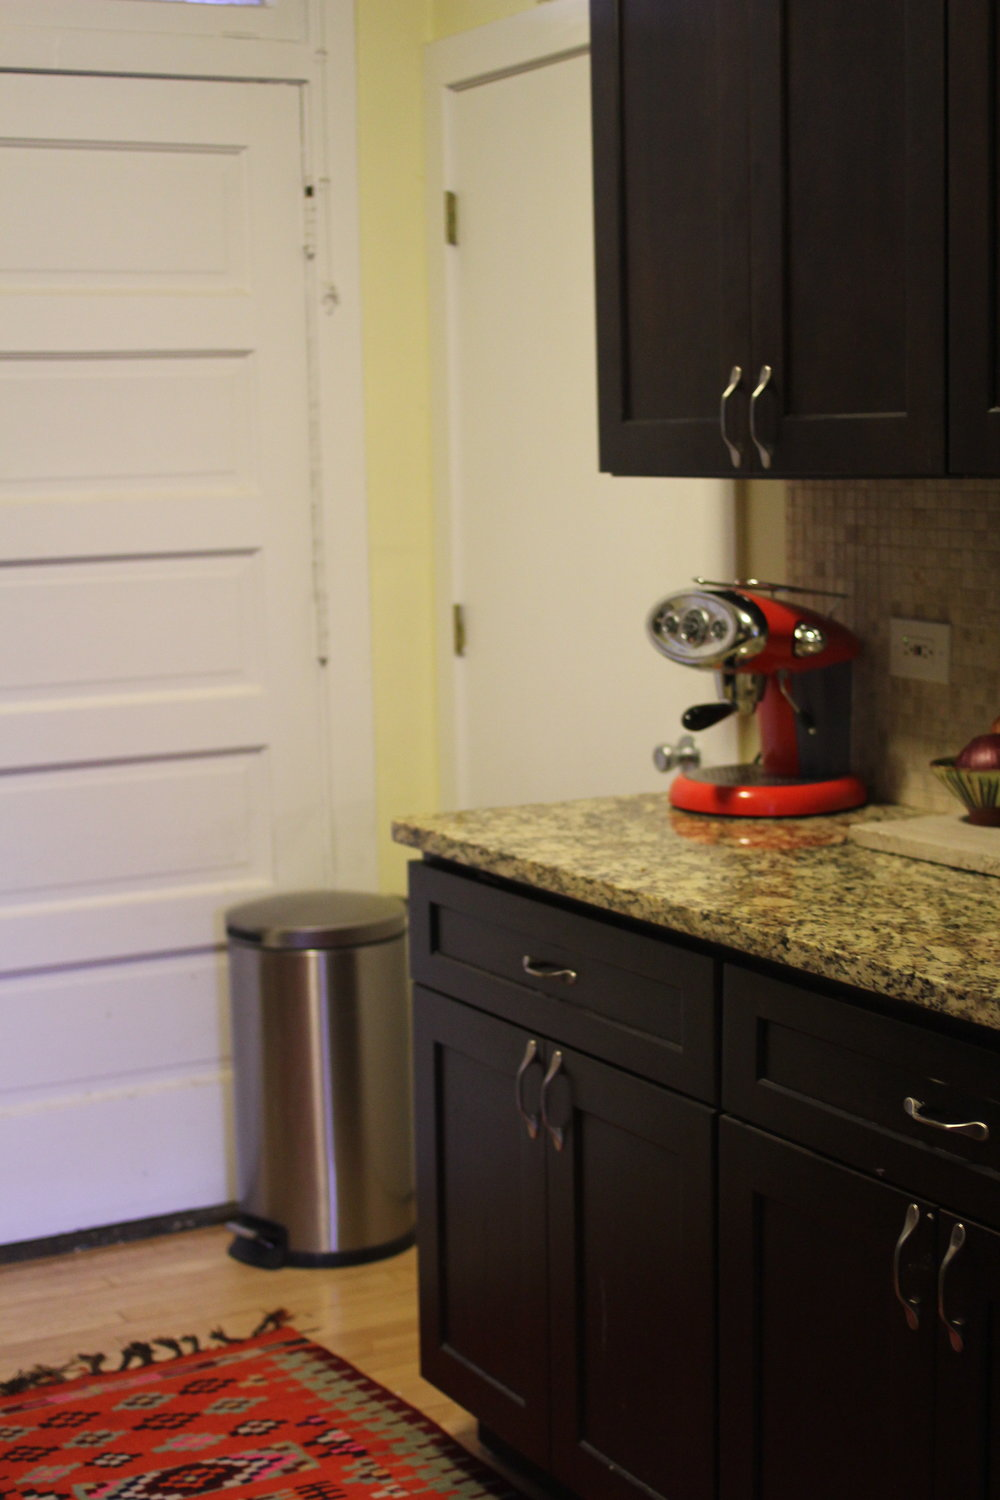 Red Espresso machine for kitchen decor